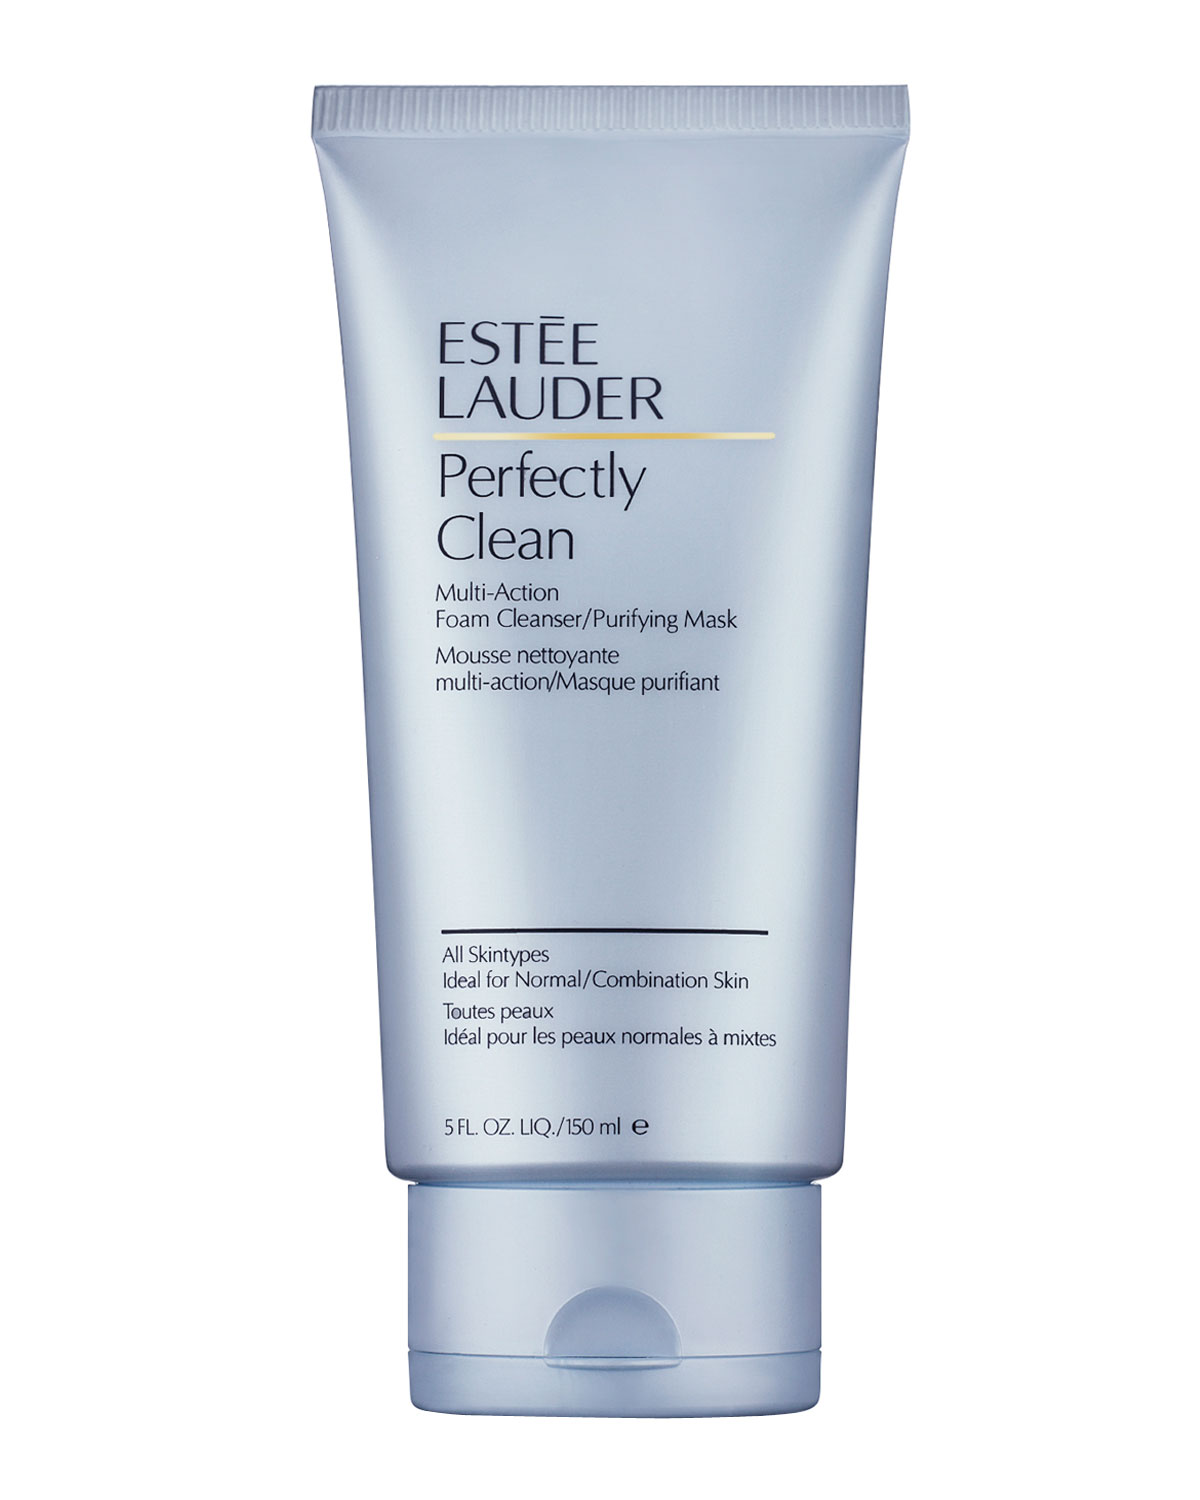 5.0 oz. Perfectly Clean Foam Cleanser/Purifying Mask